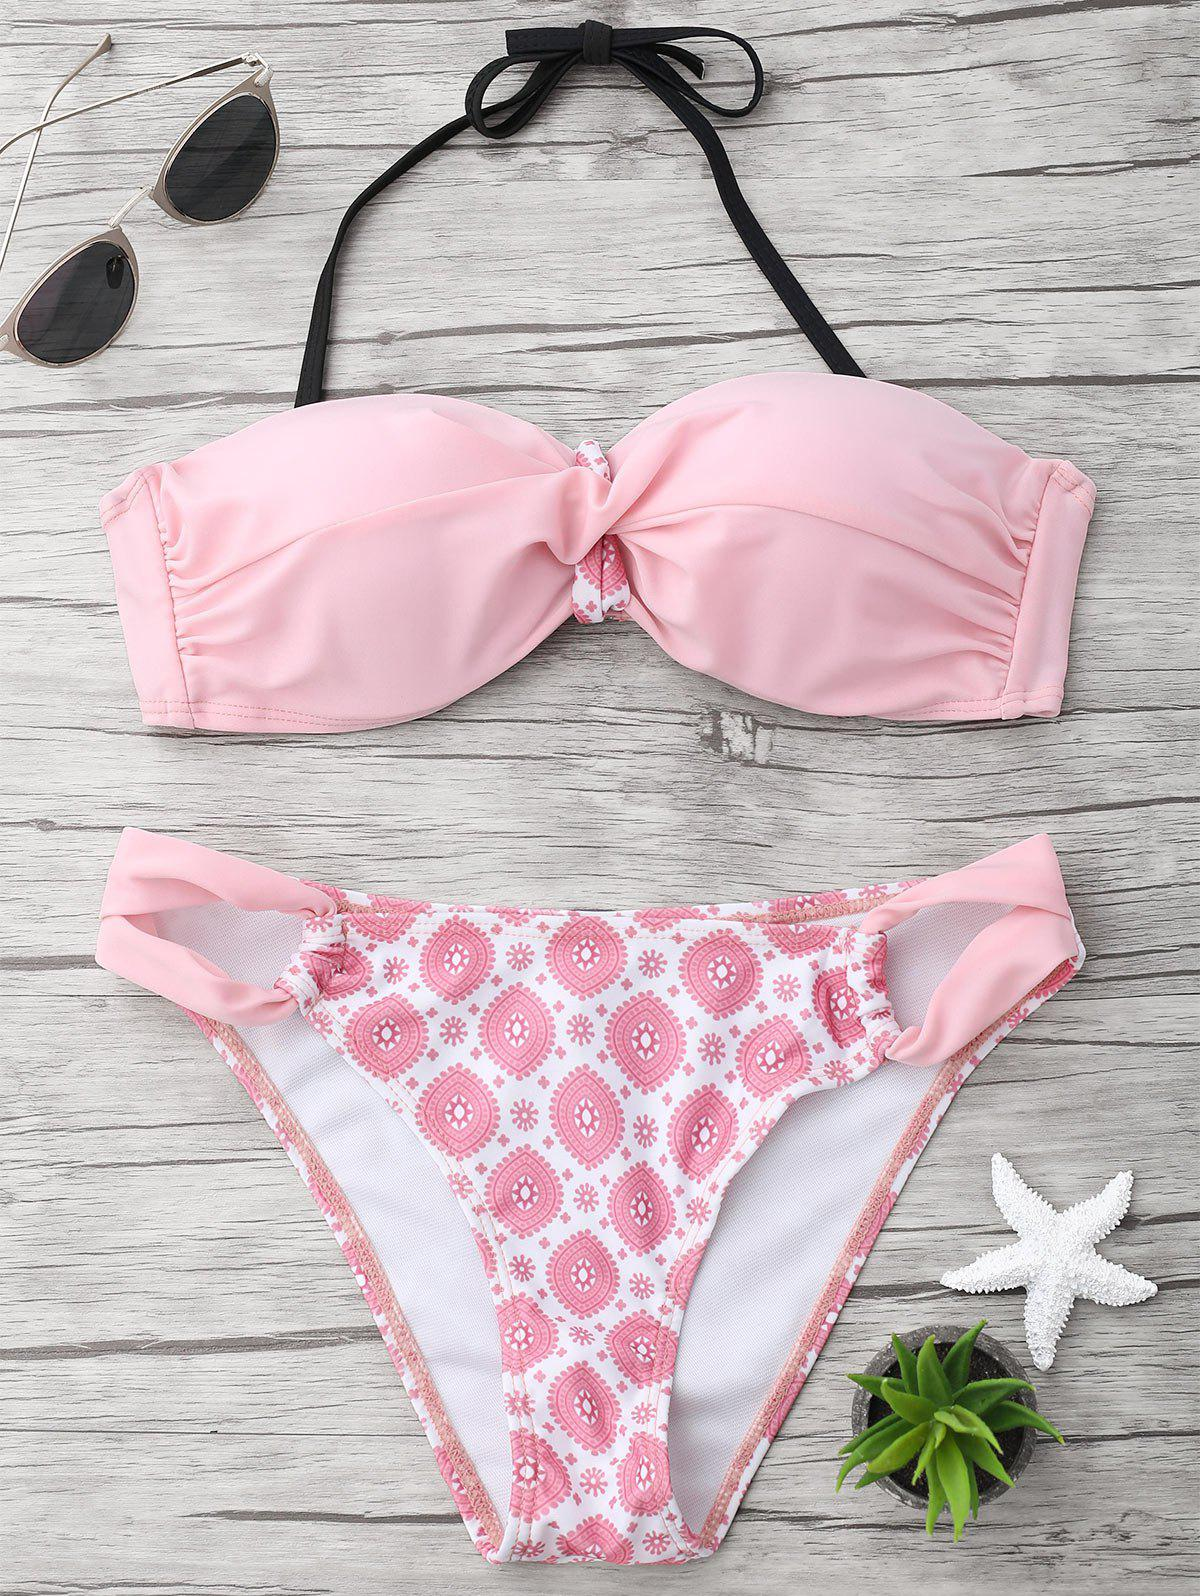 Halter Twist Printed Bikini Set - LIGHT PINK S